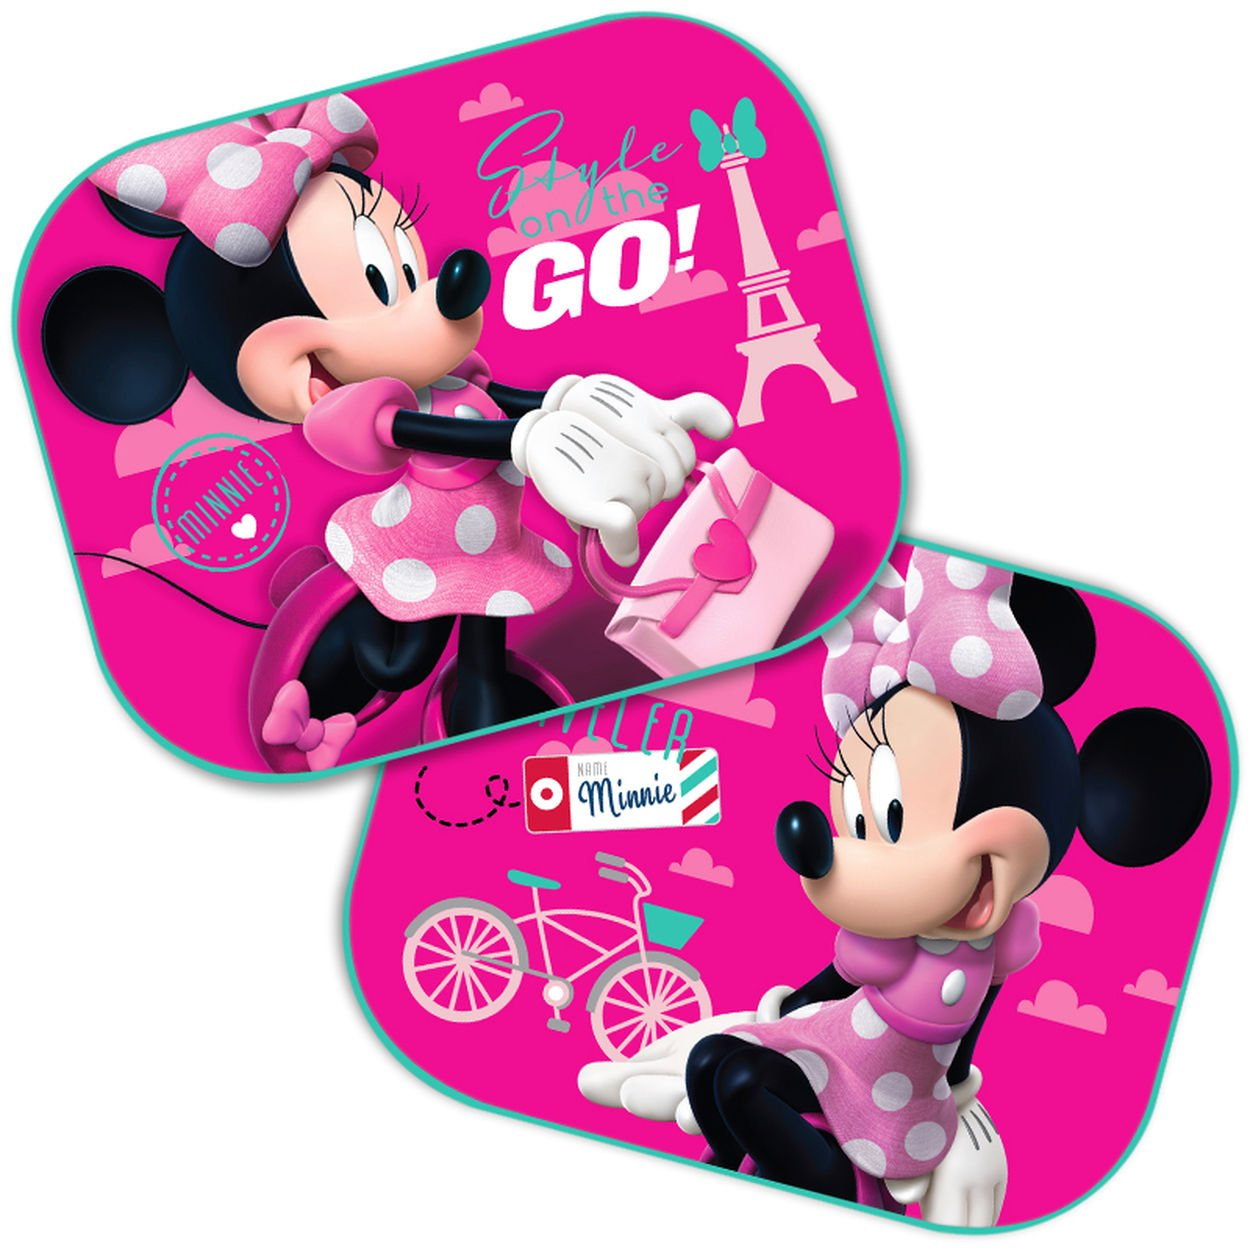 2 x Car Window Sun Shades - Universal Baby Car Sunshades - Blocks Harmful UV Rays Sun Glare Heat - Protection for Your Kids (Mickey Mouse) Sola